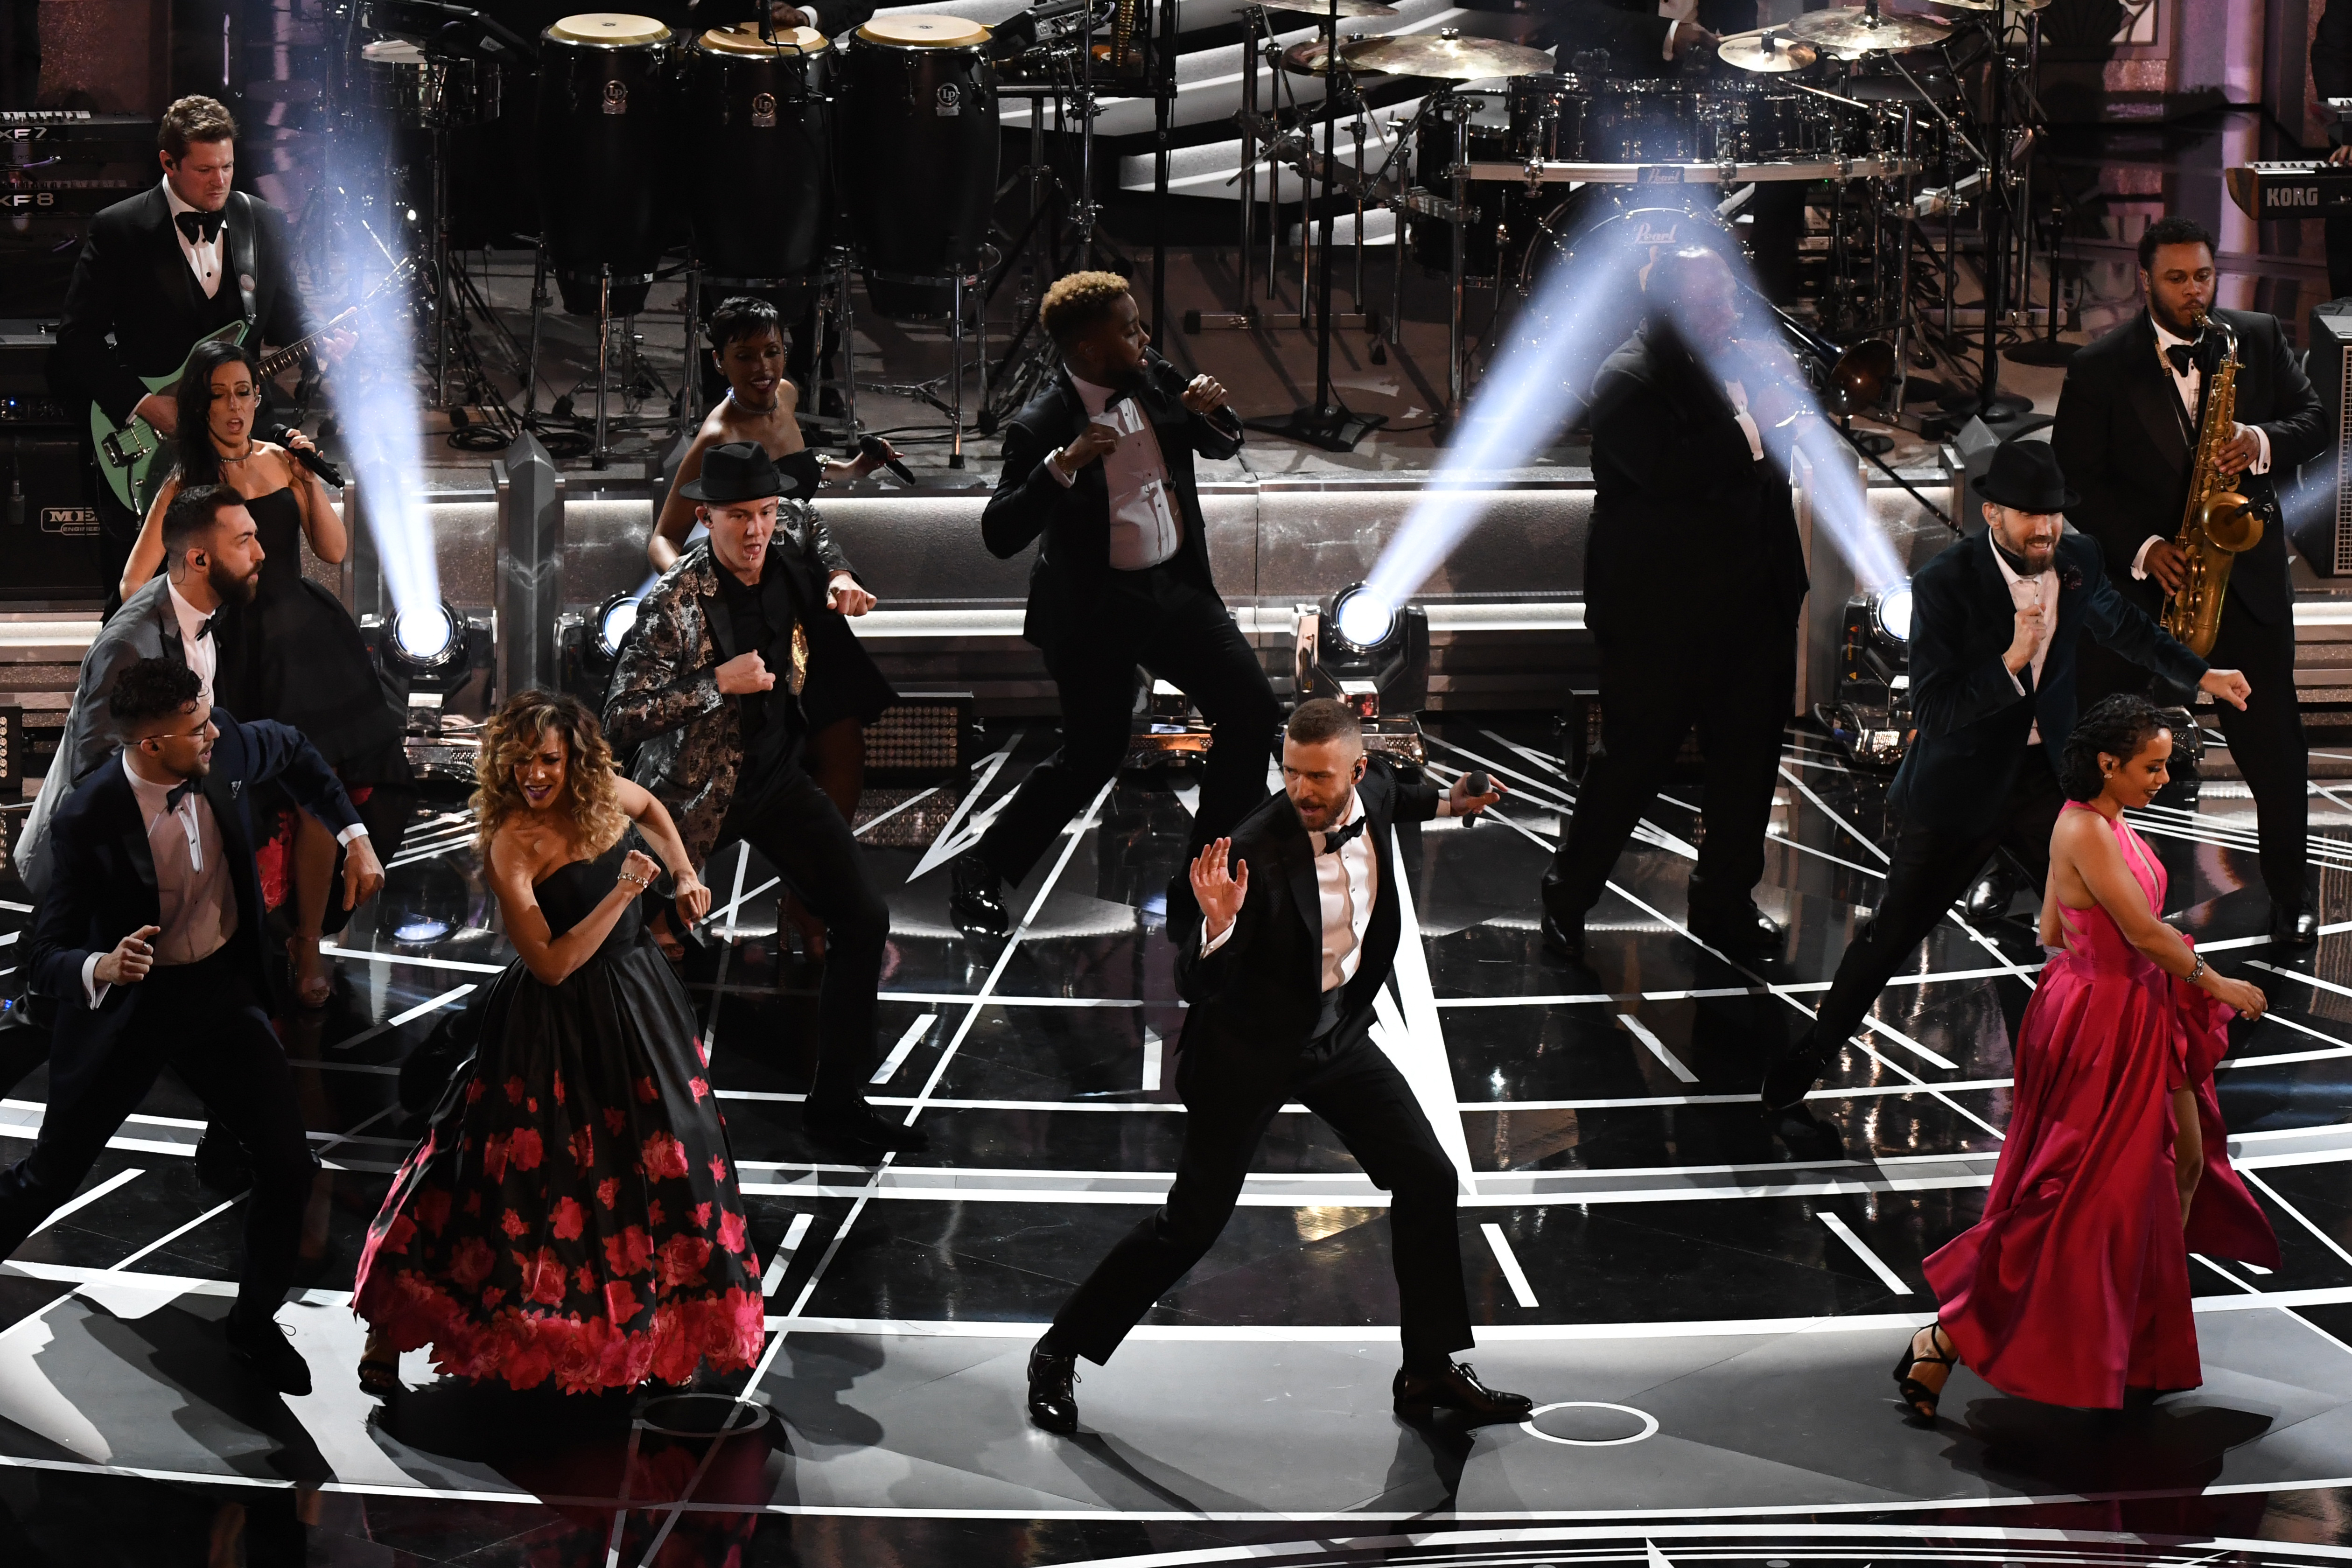 US singer Justin Timberlake (C) performs on stage at the 89th Oscars on February 26, 2017 in Hollywood, California. / AFP PHOTO / Mark RALSTON